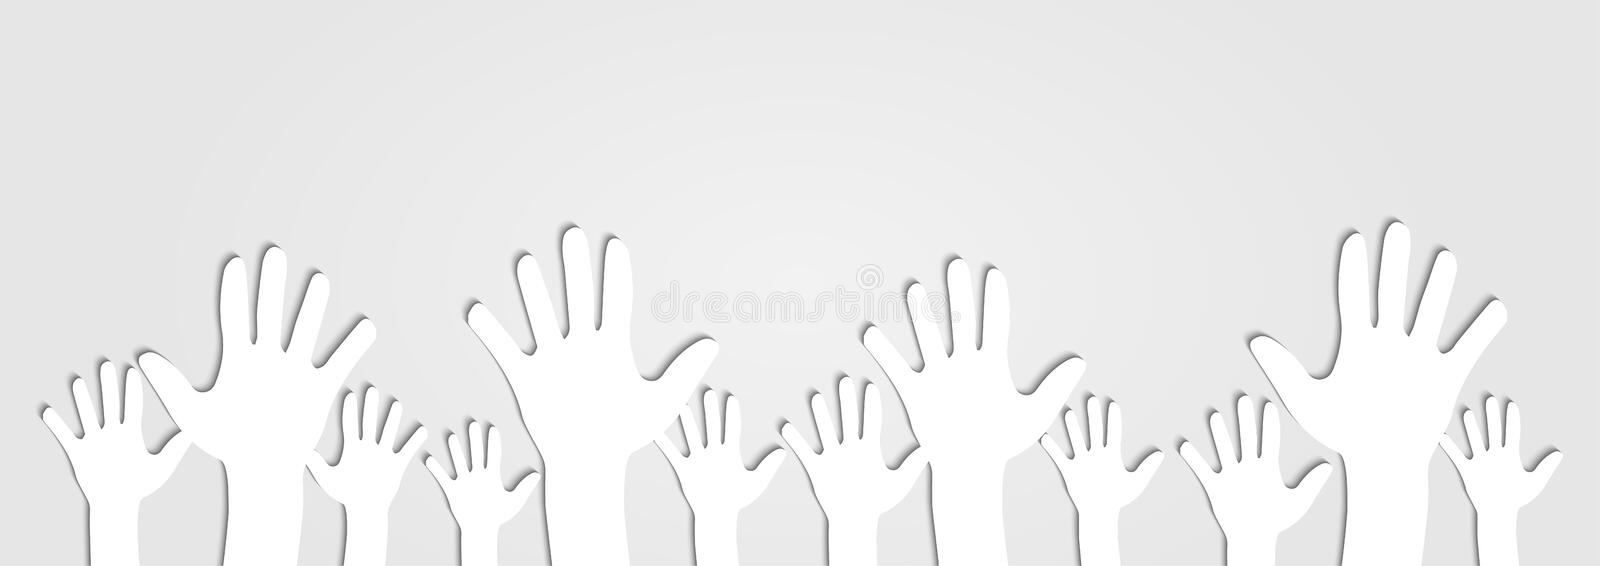 Human Hands Raised Up Cutout on Light Gray Background. Vector stock illustration